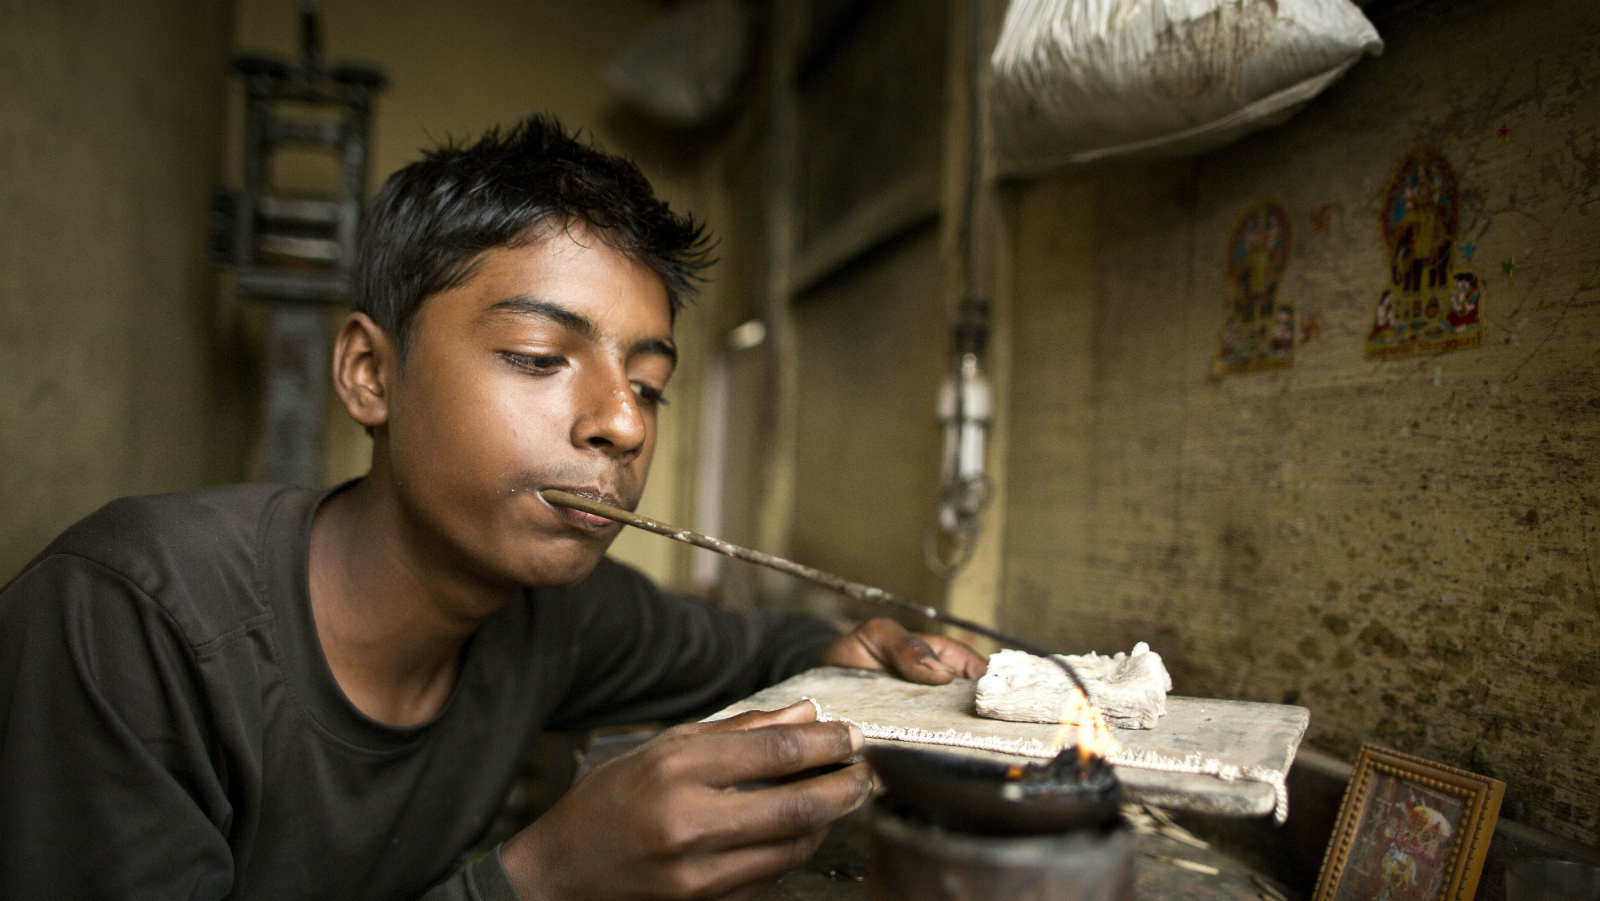 Sameer Singh, 12, works at a jewelry workshop where he earns US$ 32 a month, in Gauhati, India, Wednesday, Dec. 10, 2014. Nobel Peace Prize winners Malala Yousafzai from Pakistan and Kailash Satyarthi of India on Tuesday stressed the importance of uniting people across borders and religions by educating children and freeing them from poverty. The Nobel laureates, who split the $1.1 million award, were cited for working to protect children from slavery, extremism and child labor at great risk to their own lives. (AP Photo/Anupam Nath)